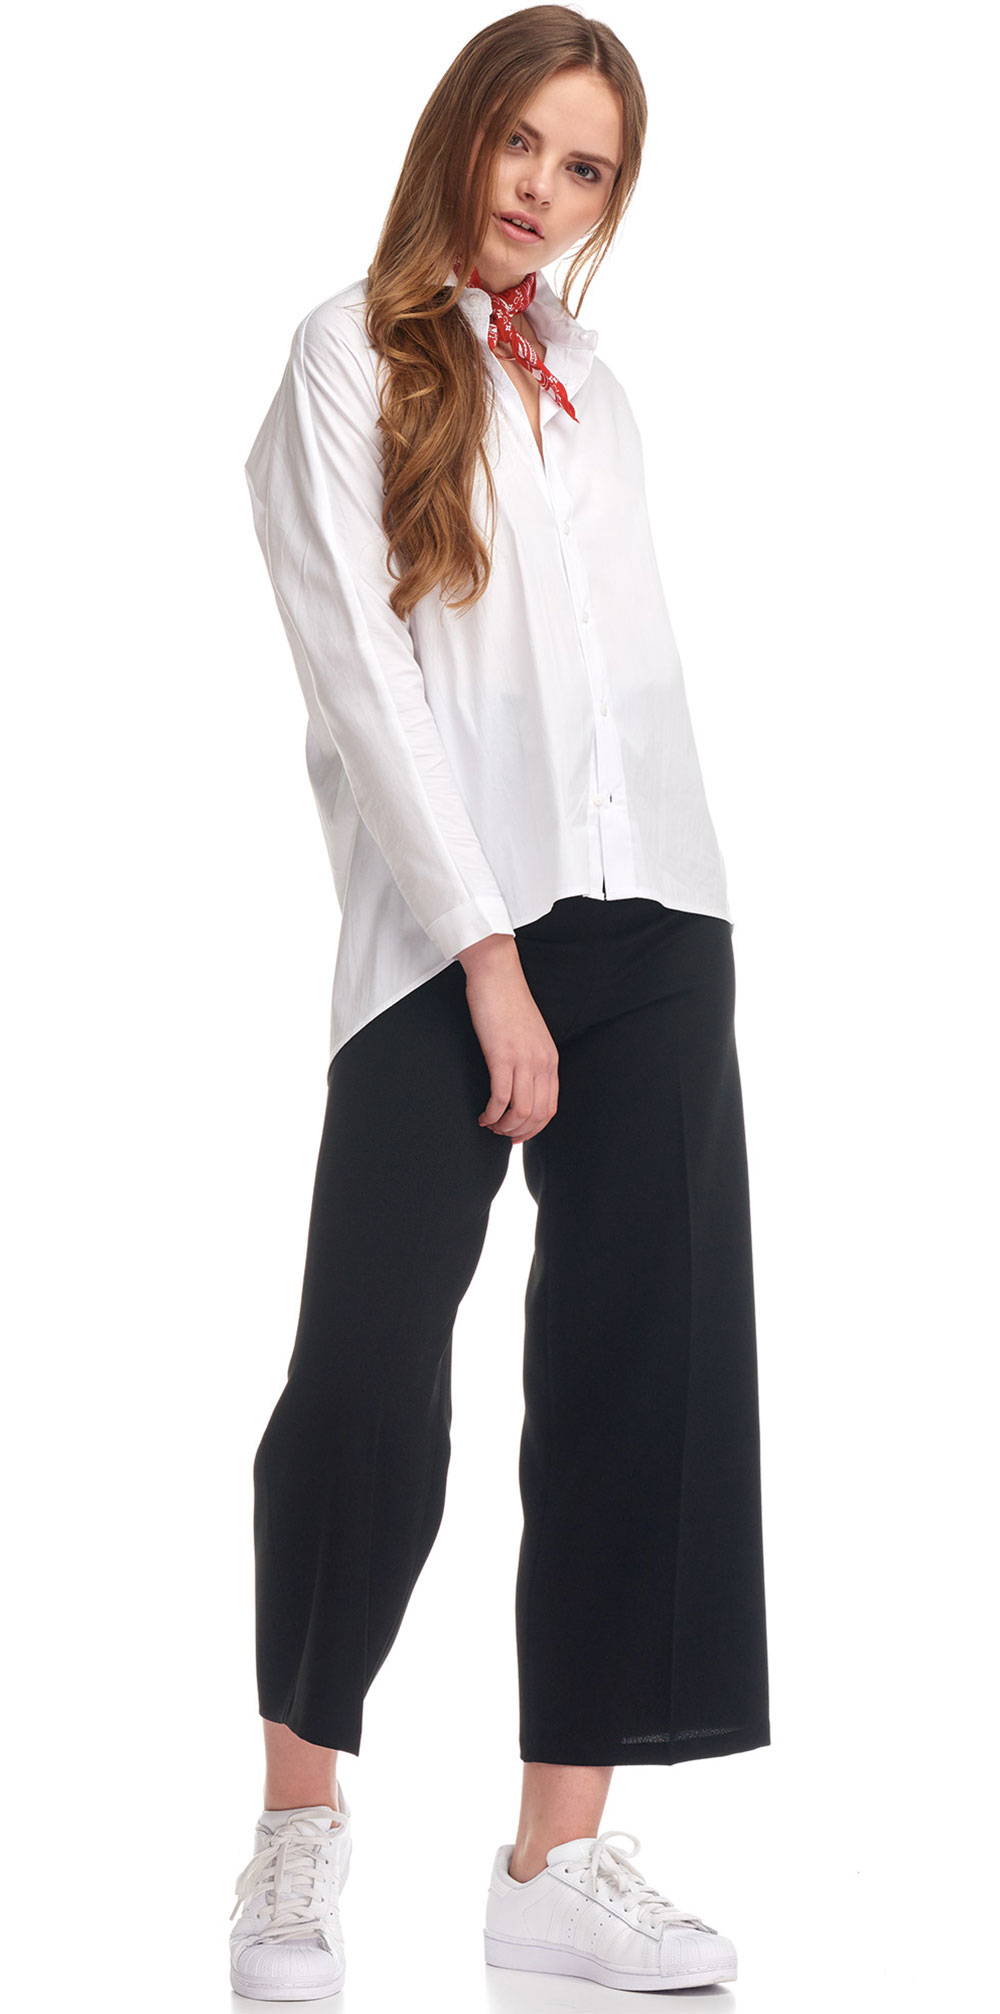 culotte jeans daily outfit